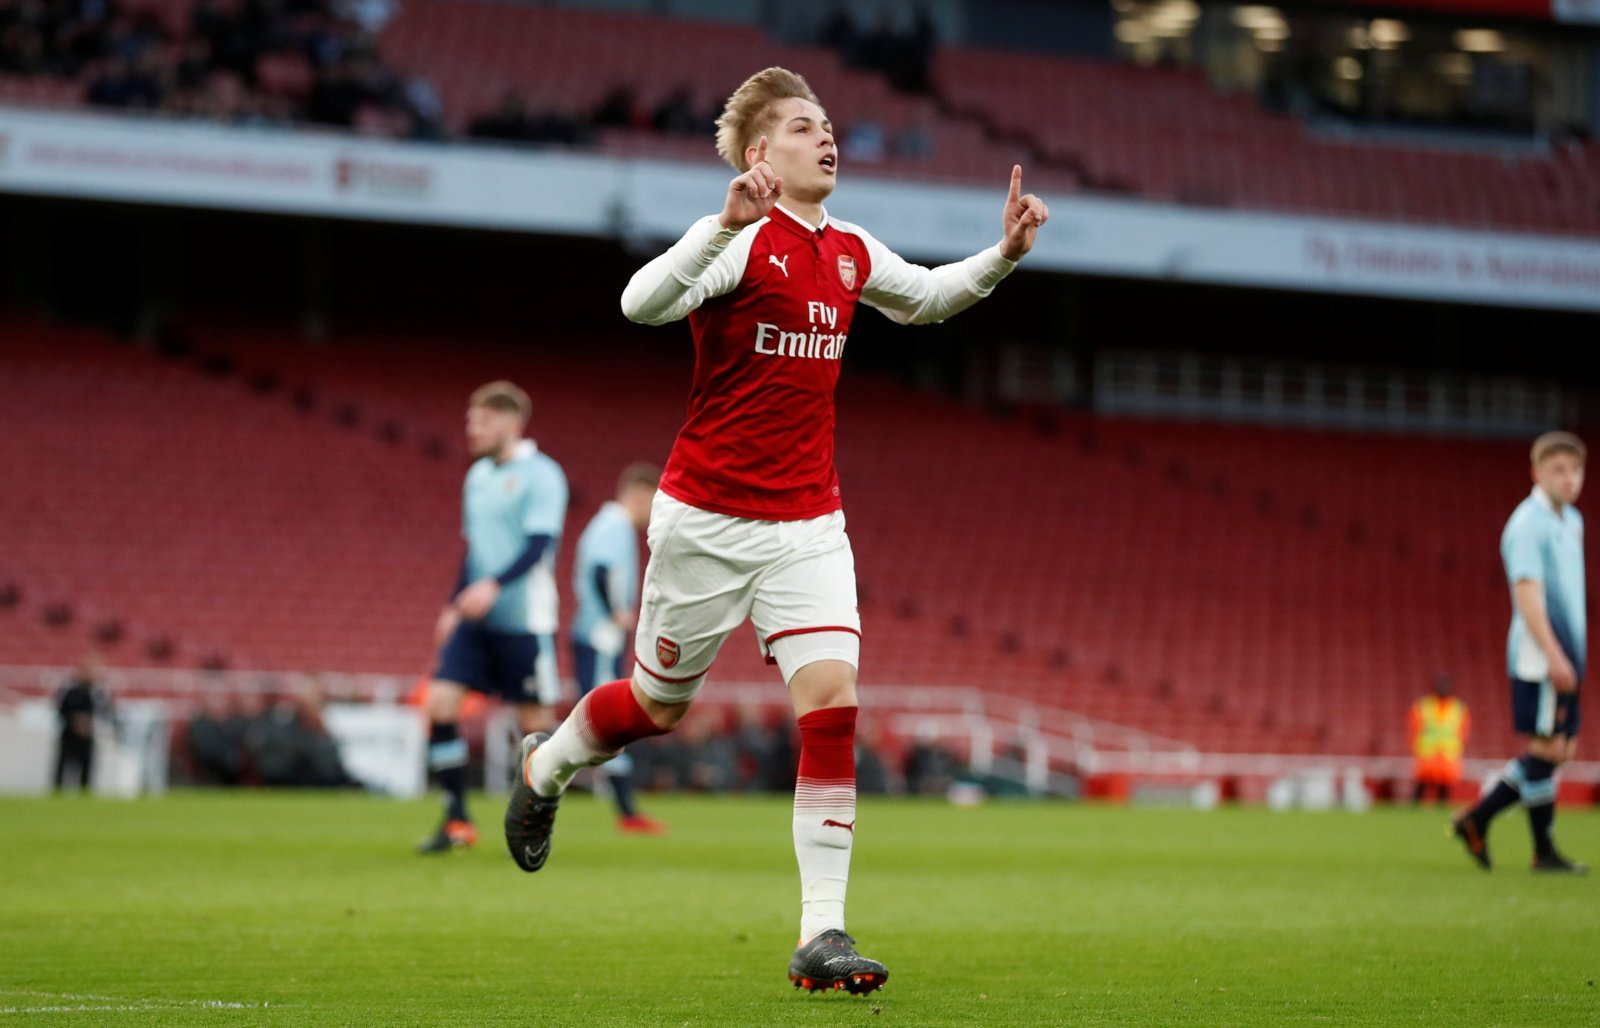 Southampton could bring the best out of Emile Smith-Rowe